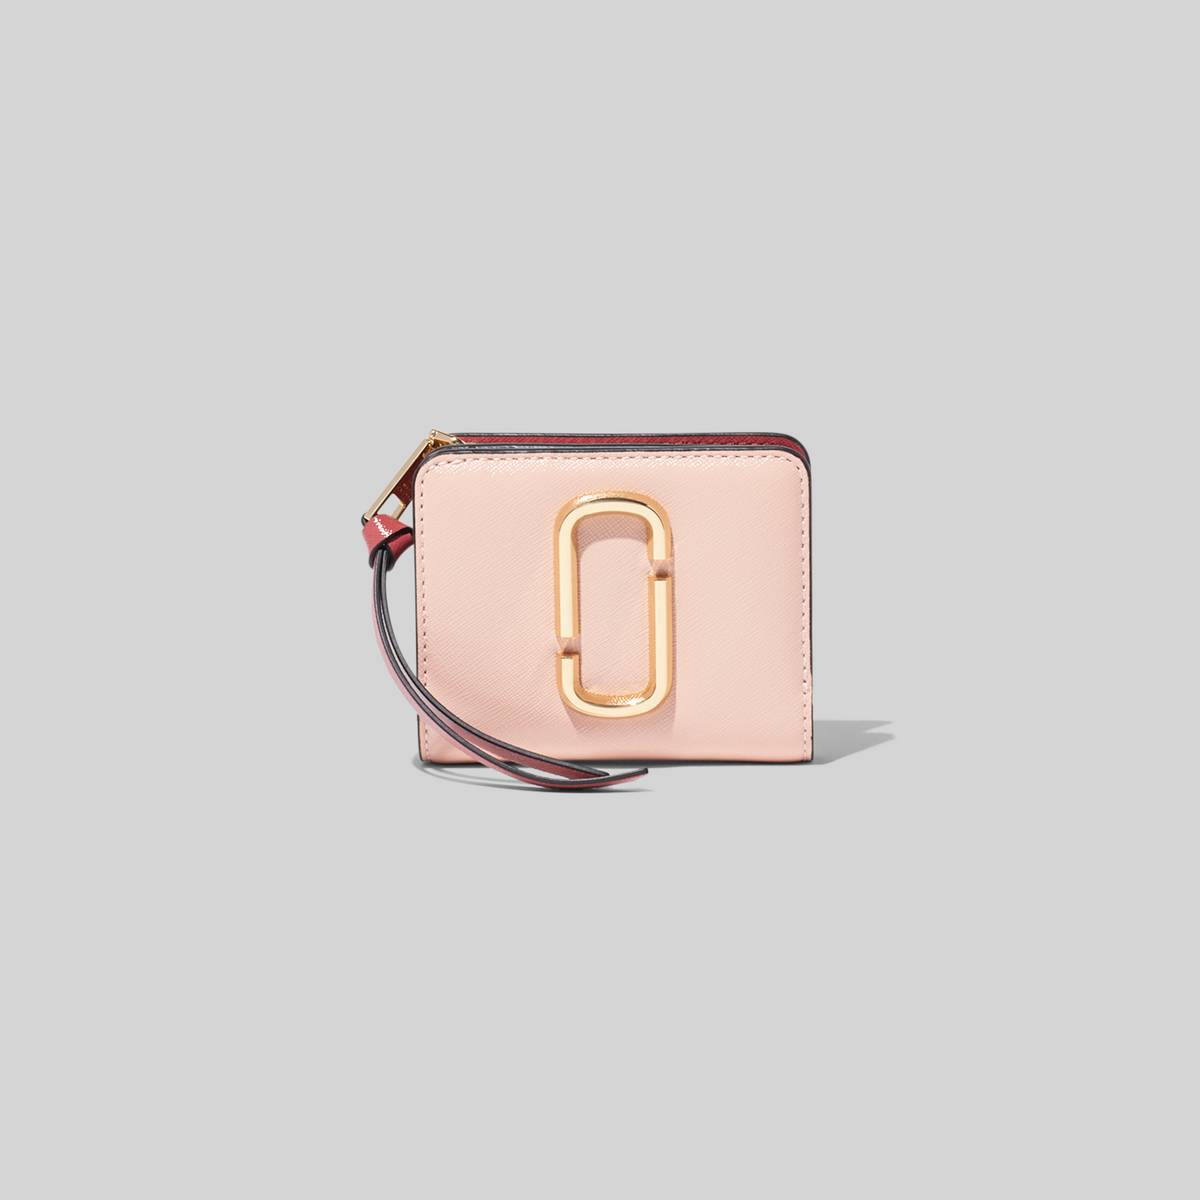 Mini leather wallet with Double-J hardware. | MARC JACOBS Women\\'s The Snapshot Mini Compact Wallet in New Rose Multi